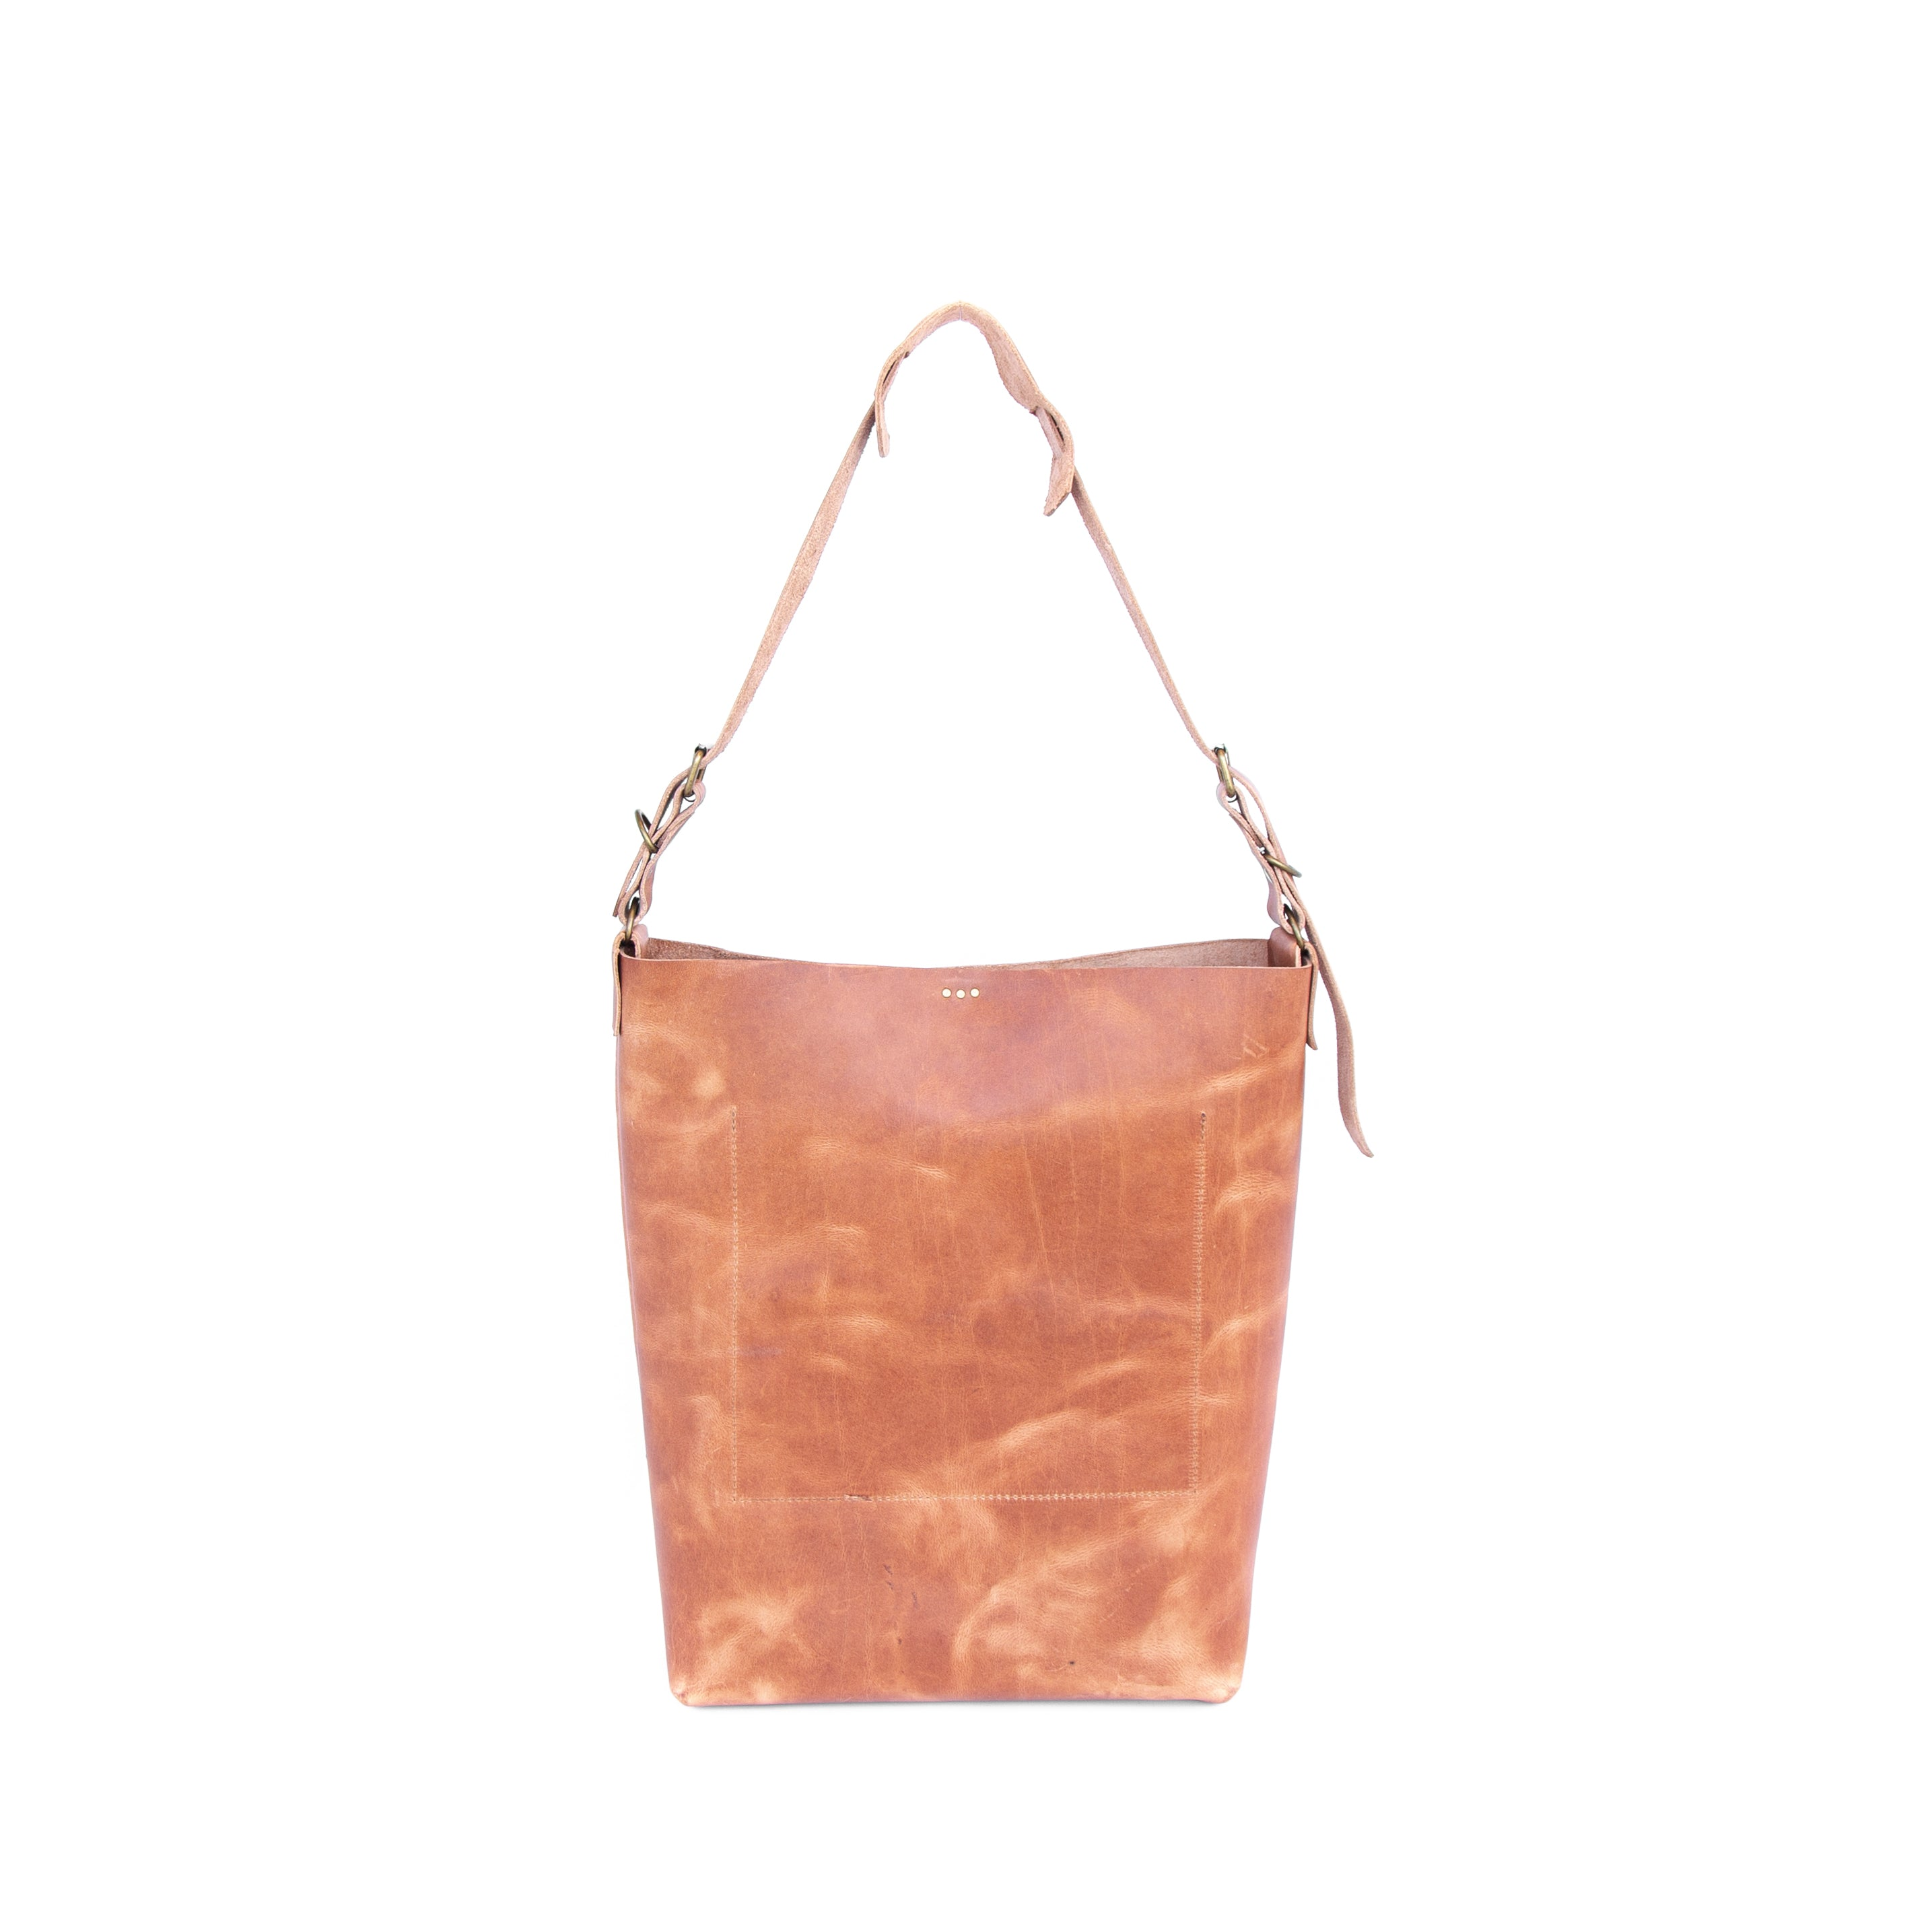 Lady Bag in Oiled Veg Tan Leather - handcrafted by Market Canvas Leather in Tofino, BC, Canada